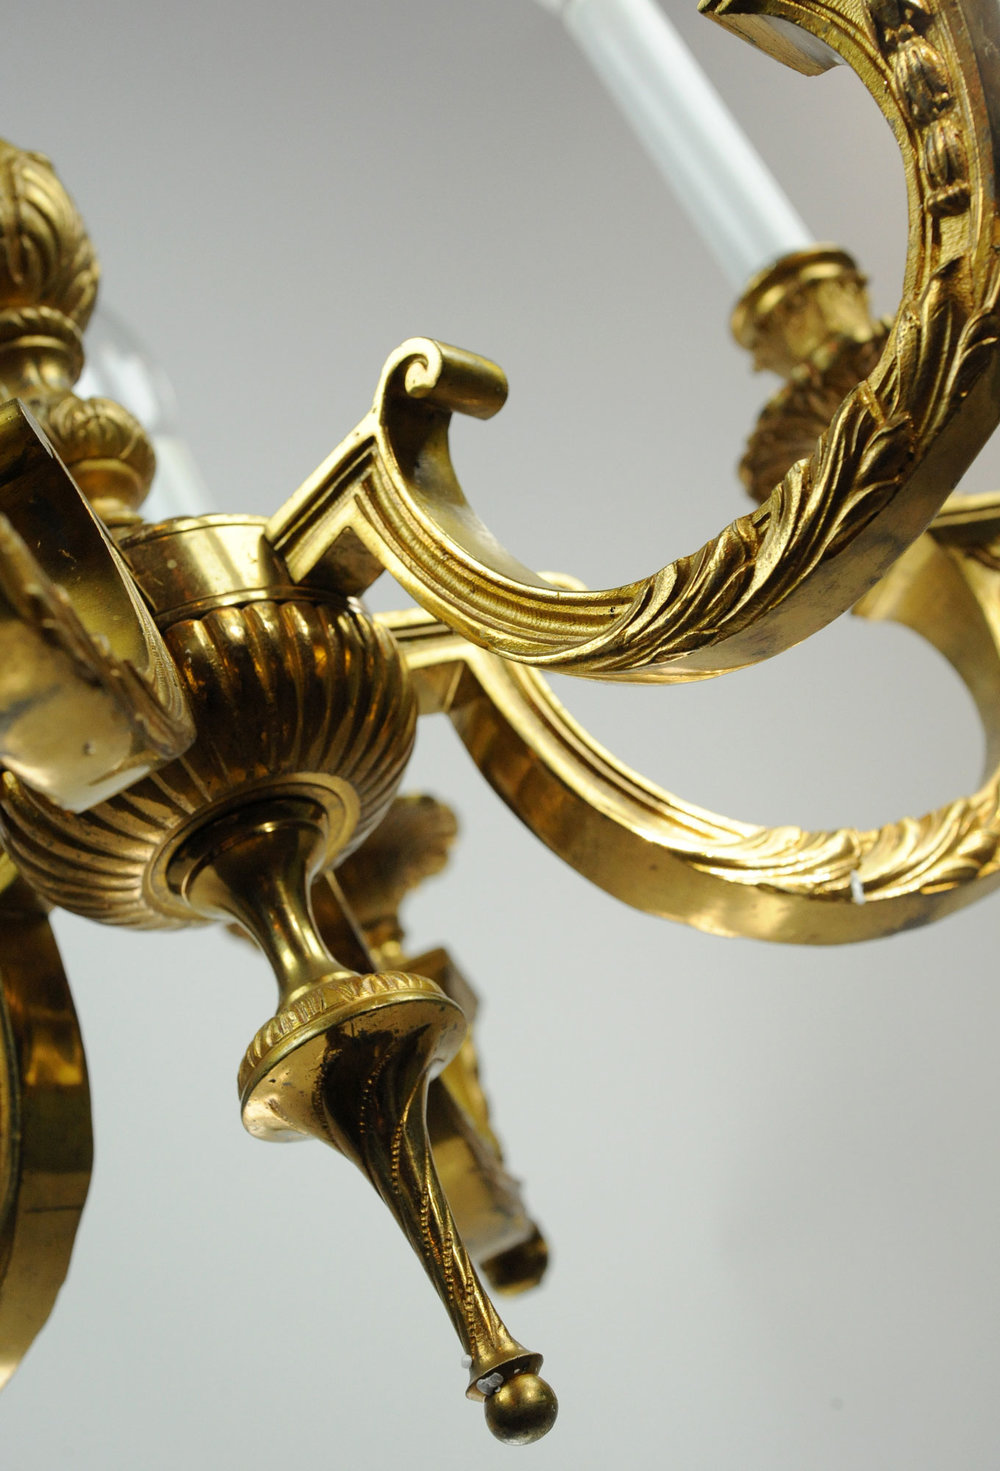 46926-brass-chandelier-low-angle.jpg